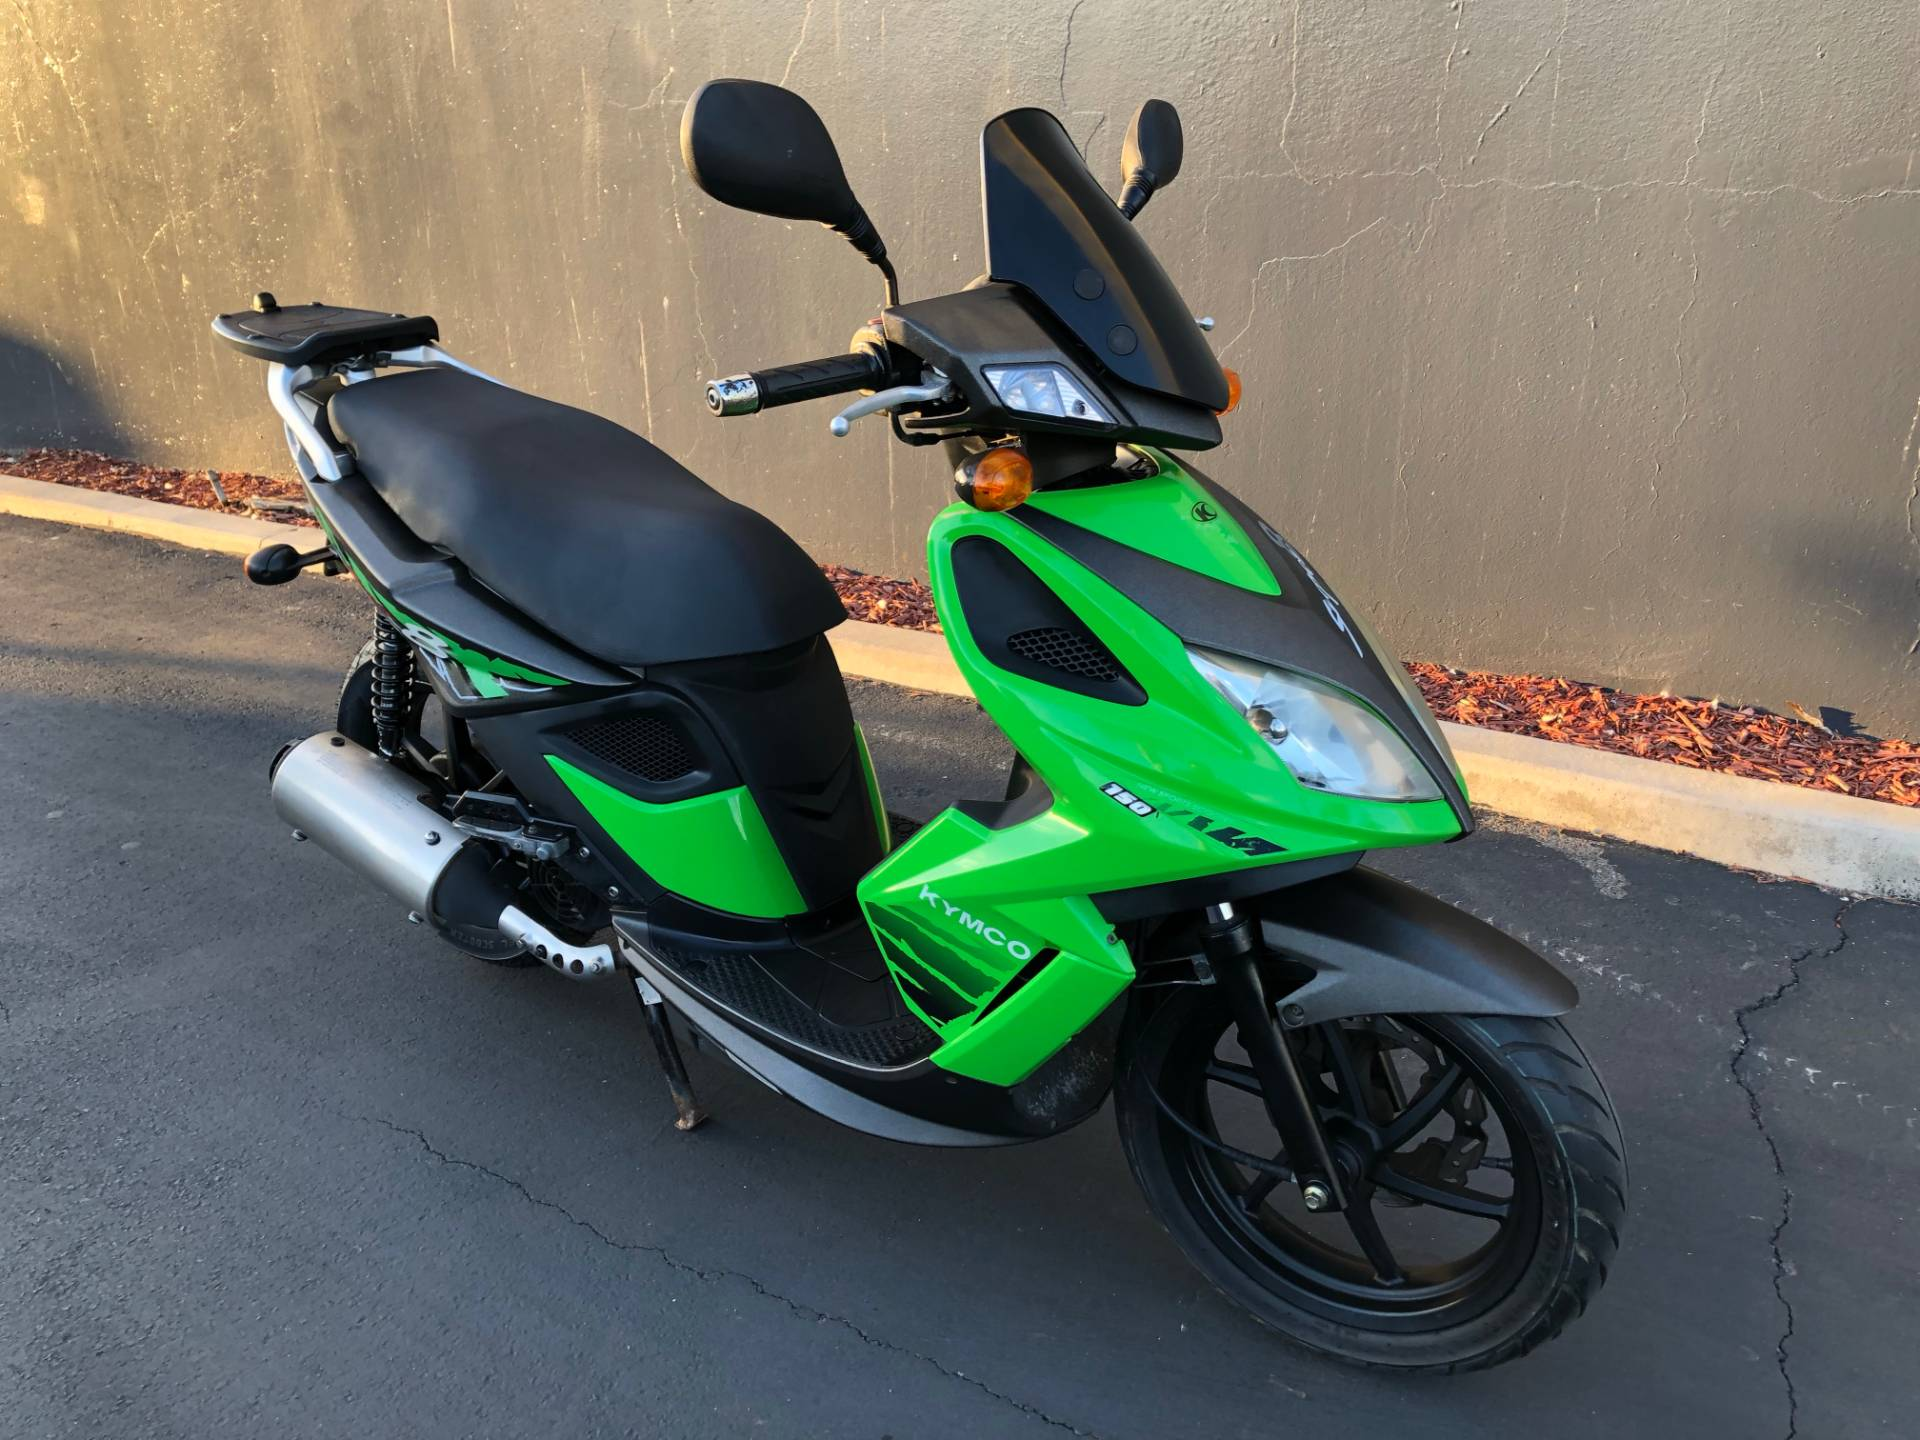 2012 Kymco Super 8 150 in Chula Vista, California - Photo 2